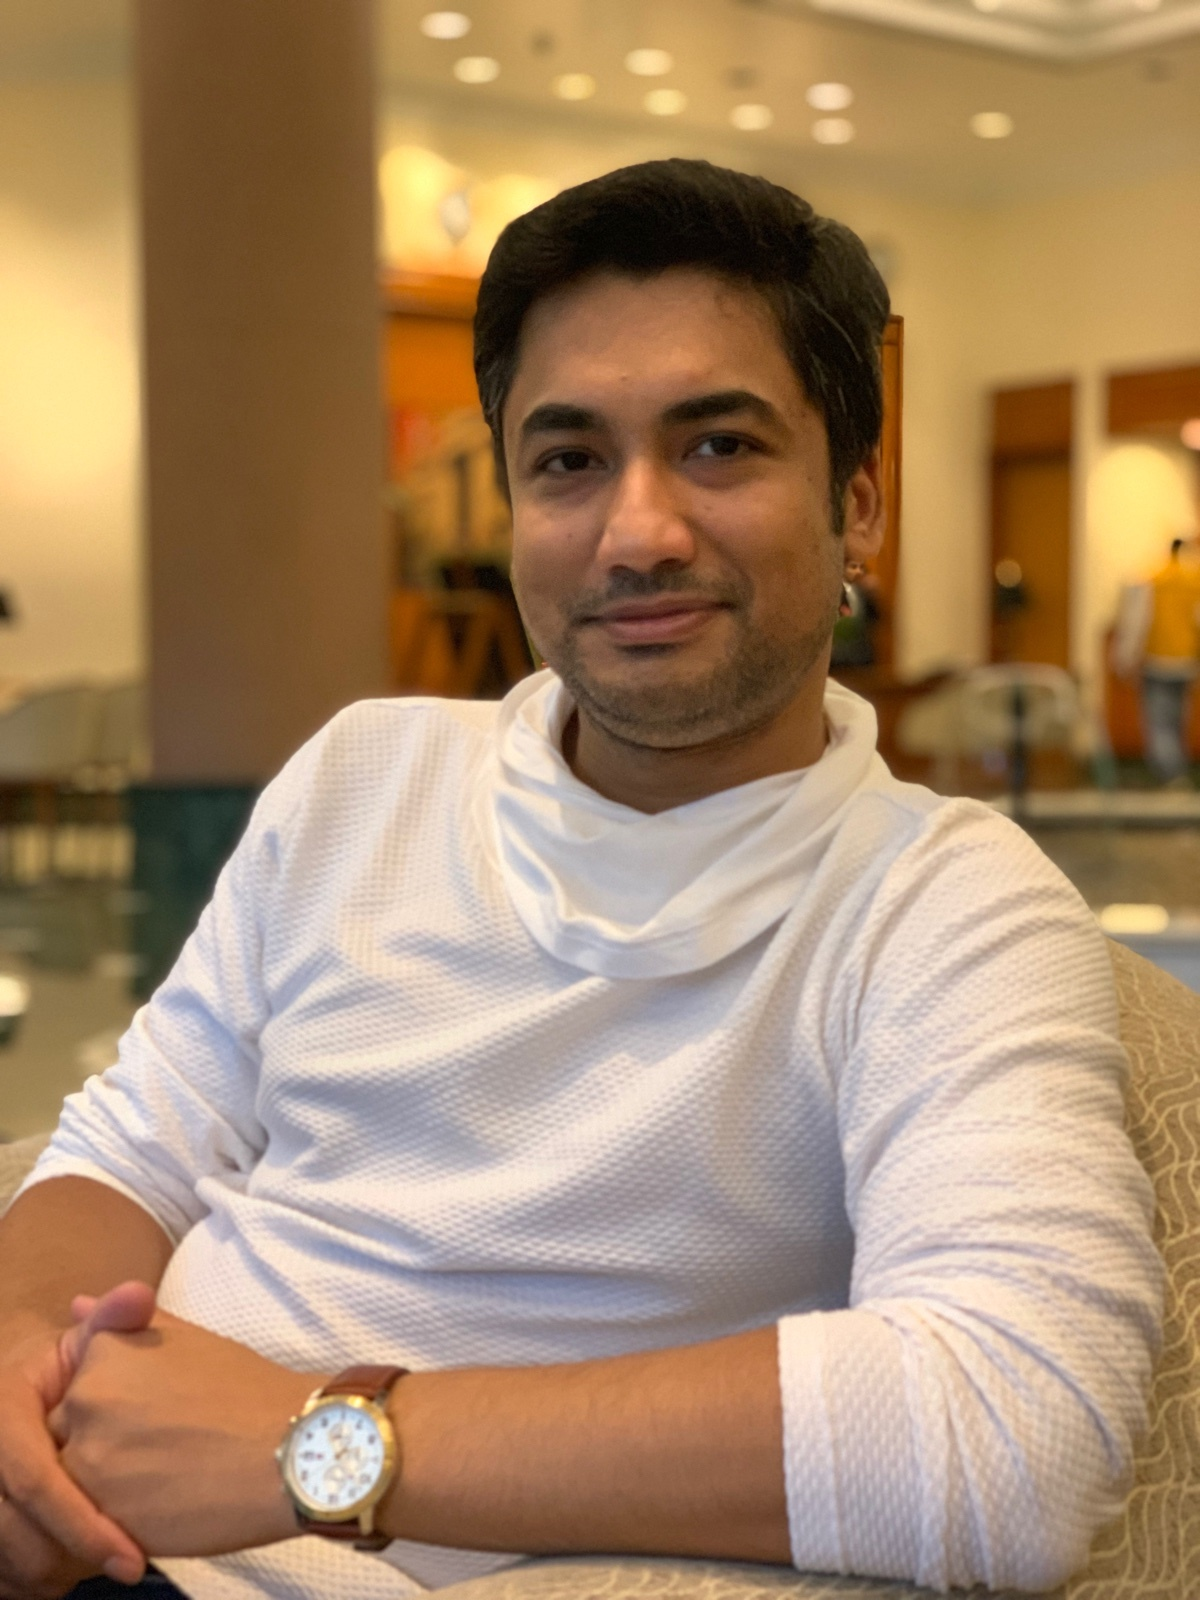 Abhijeet Mukherjee smiling in a white high neck